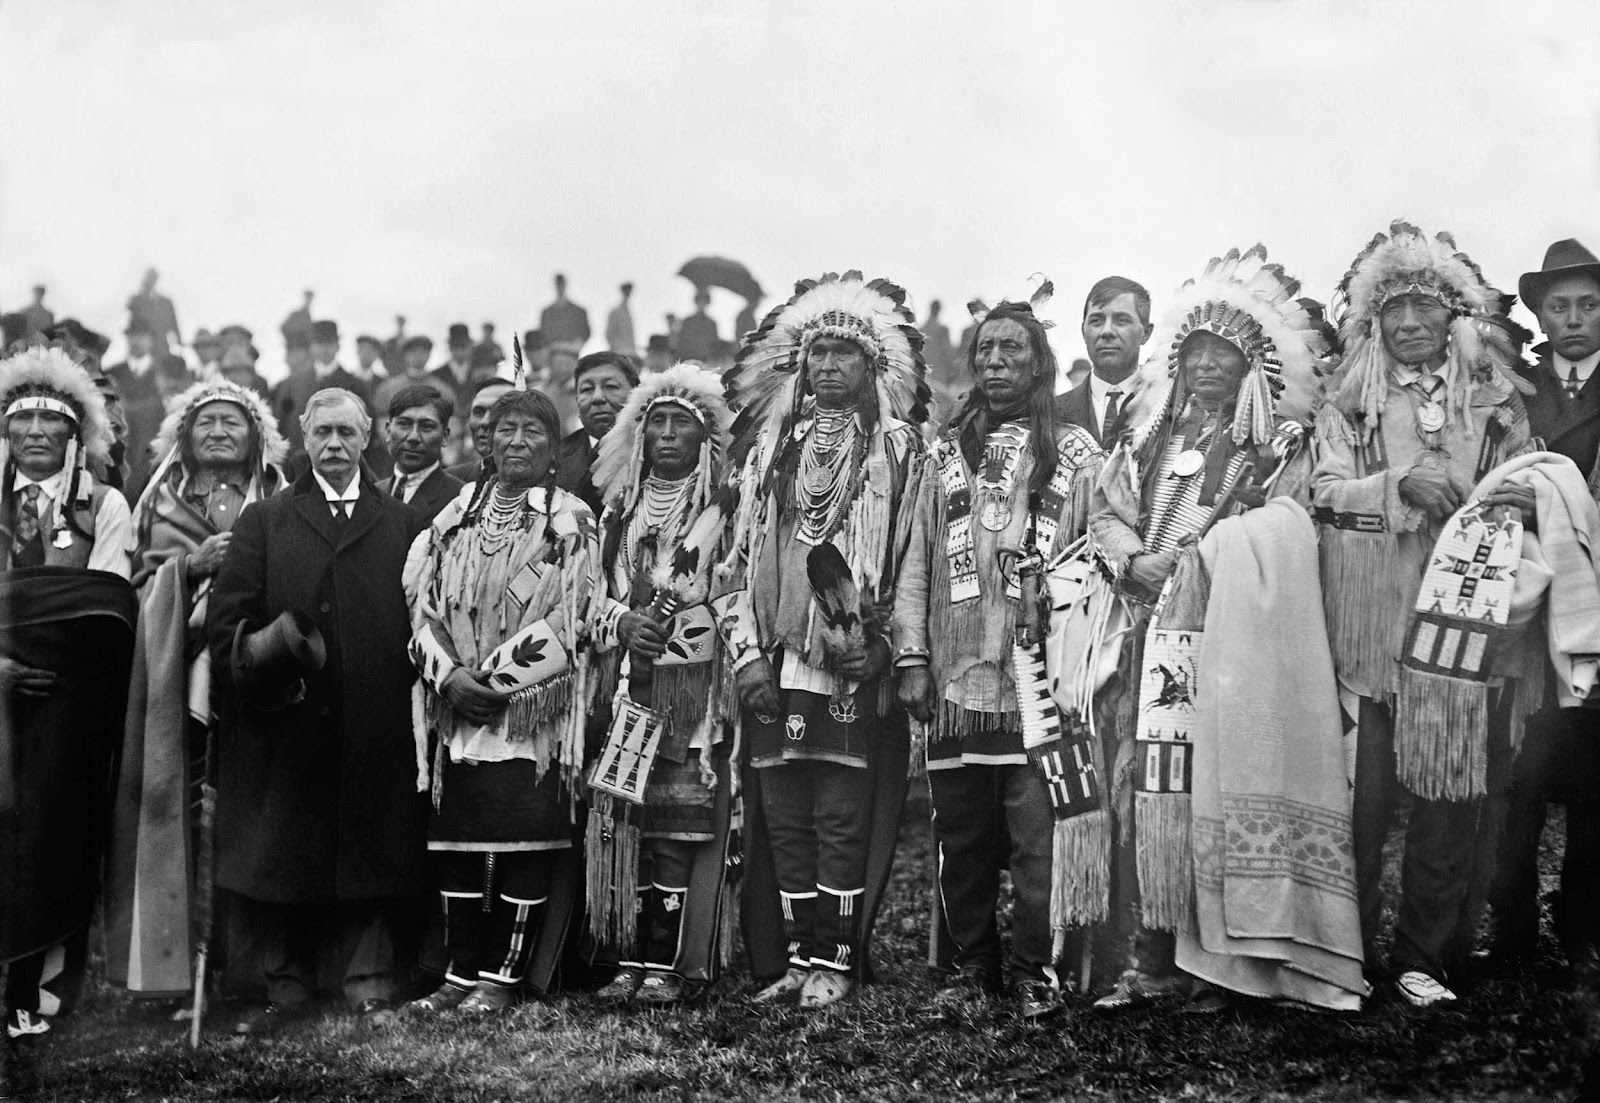 Native+American+chiefs+with+Rodman+Wanamaker+at+the+groundbreaking+ceremony+for+the+National+American+Indian+Memorial+%2528which+was+never+built%2529%252C+Fort+Wadsworth%252C+Staten+Island%252C+New+York.jpg